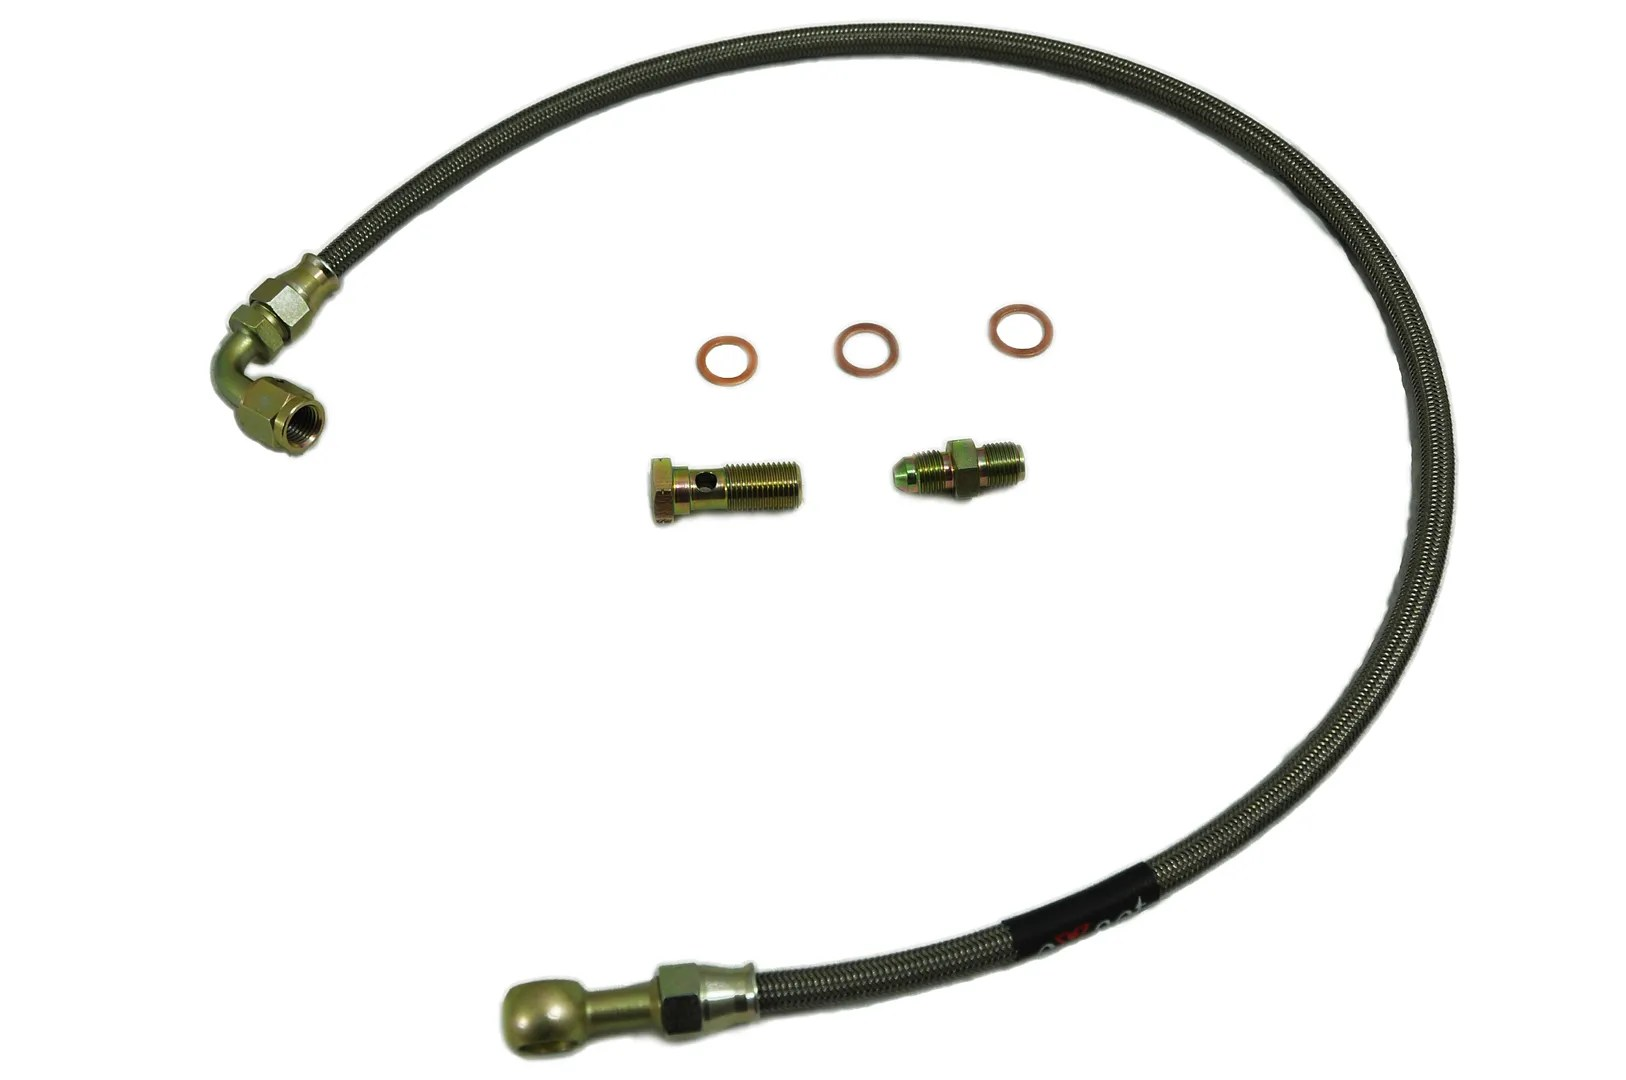 Braided Turbo Oil Feed Line Fits Nissan Silvia S15 SR20DET